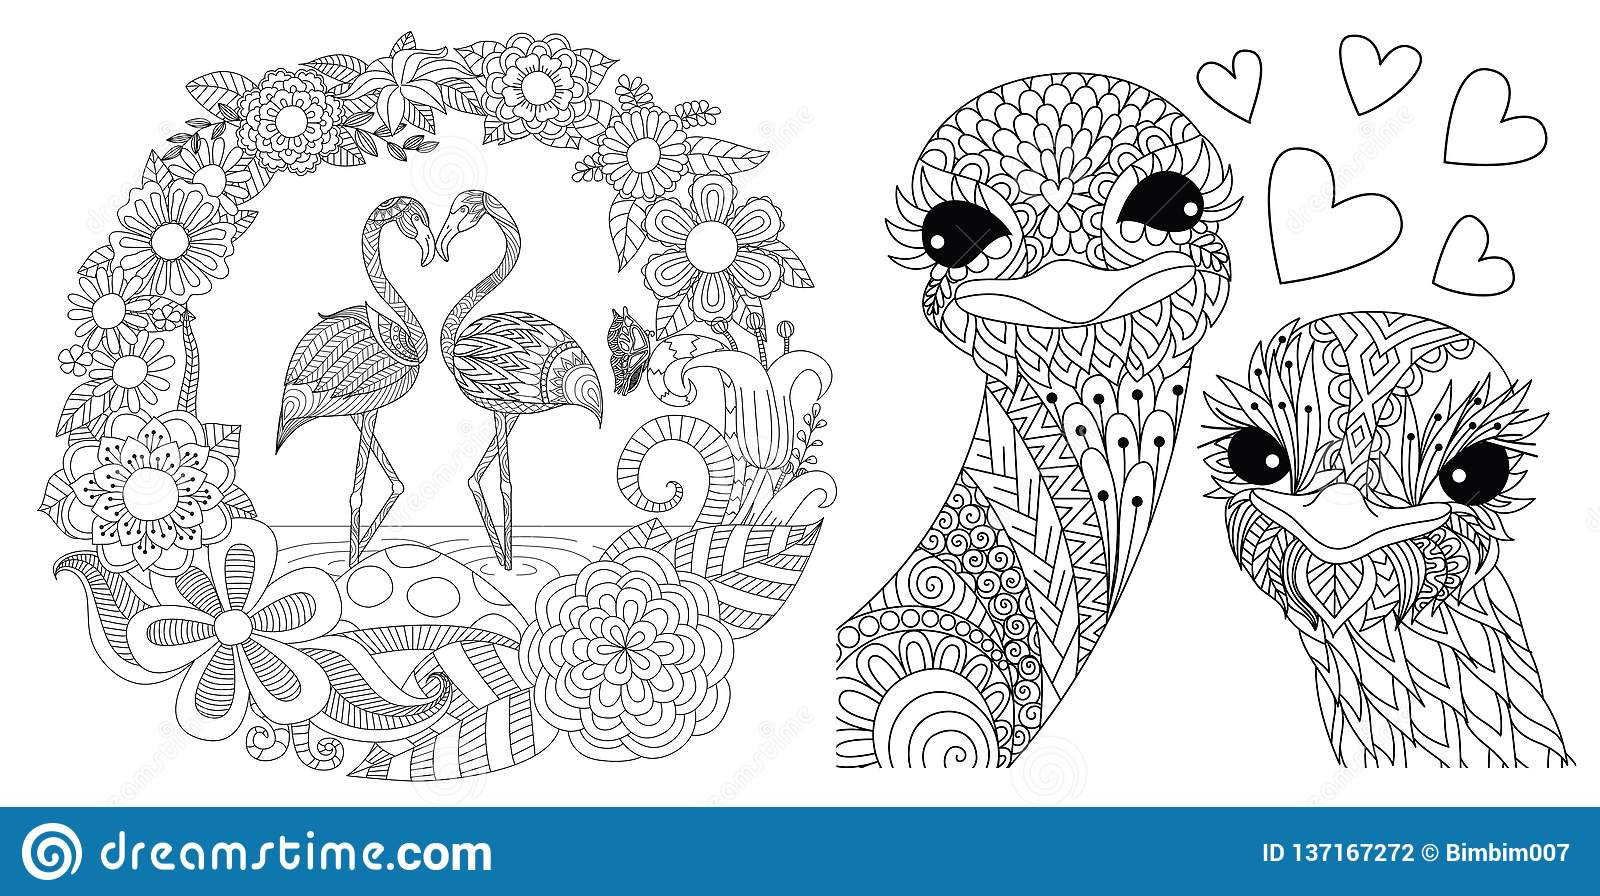 Flamingos and ostriches stock vector. Illustration of ...